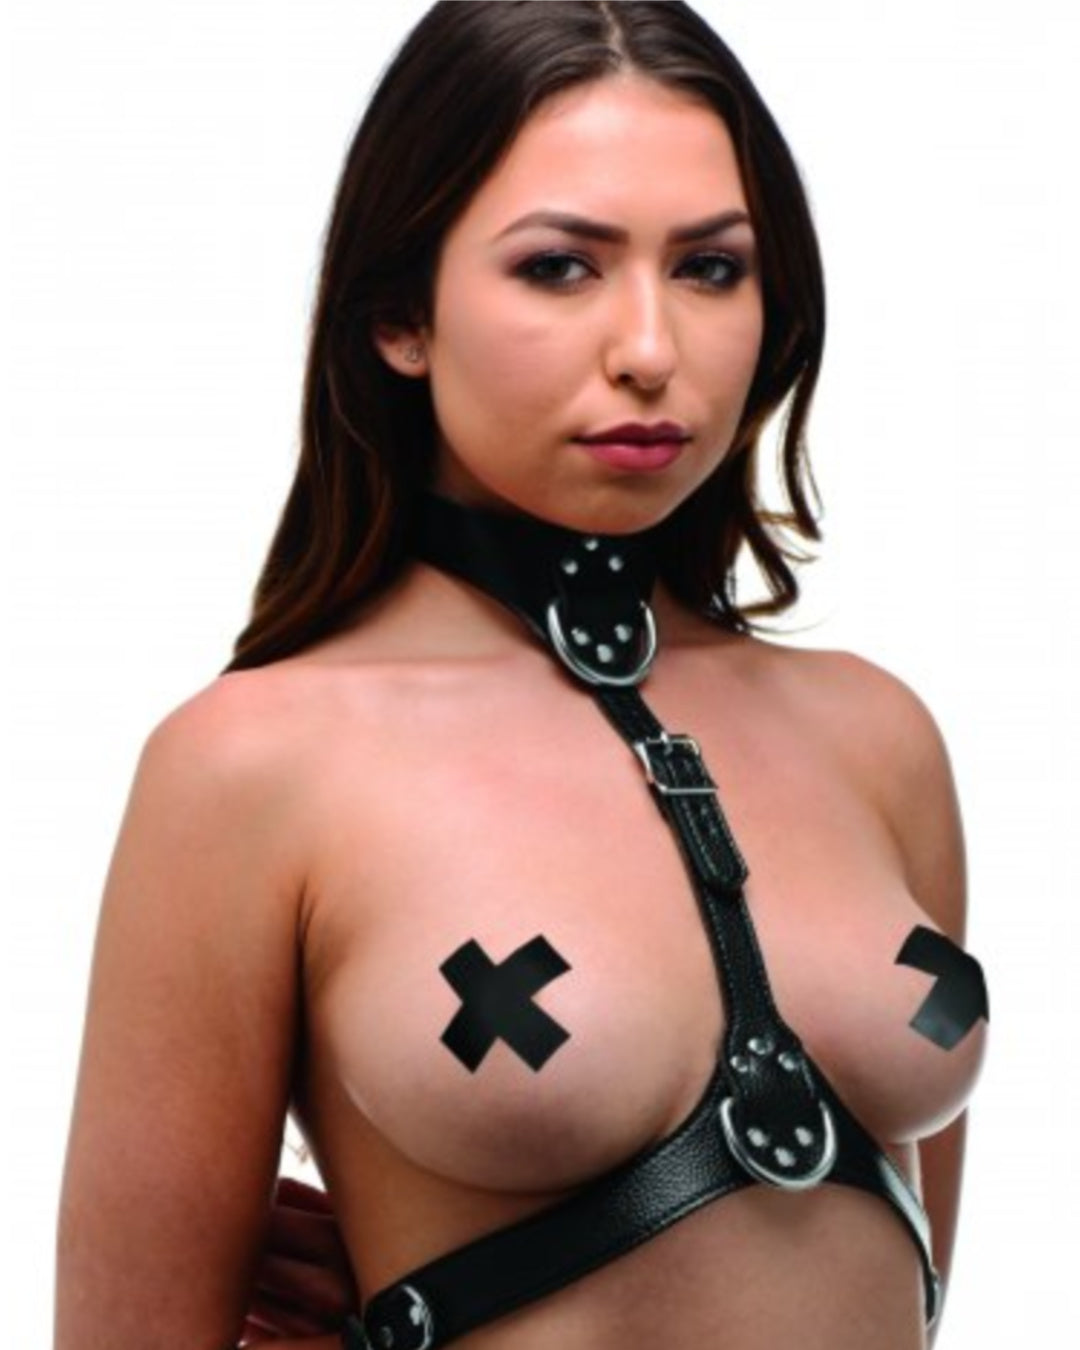 Female Leather Chest Harness - Black Side View Worn by Model